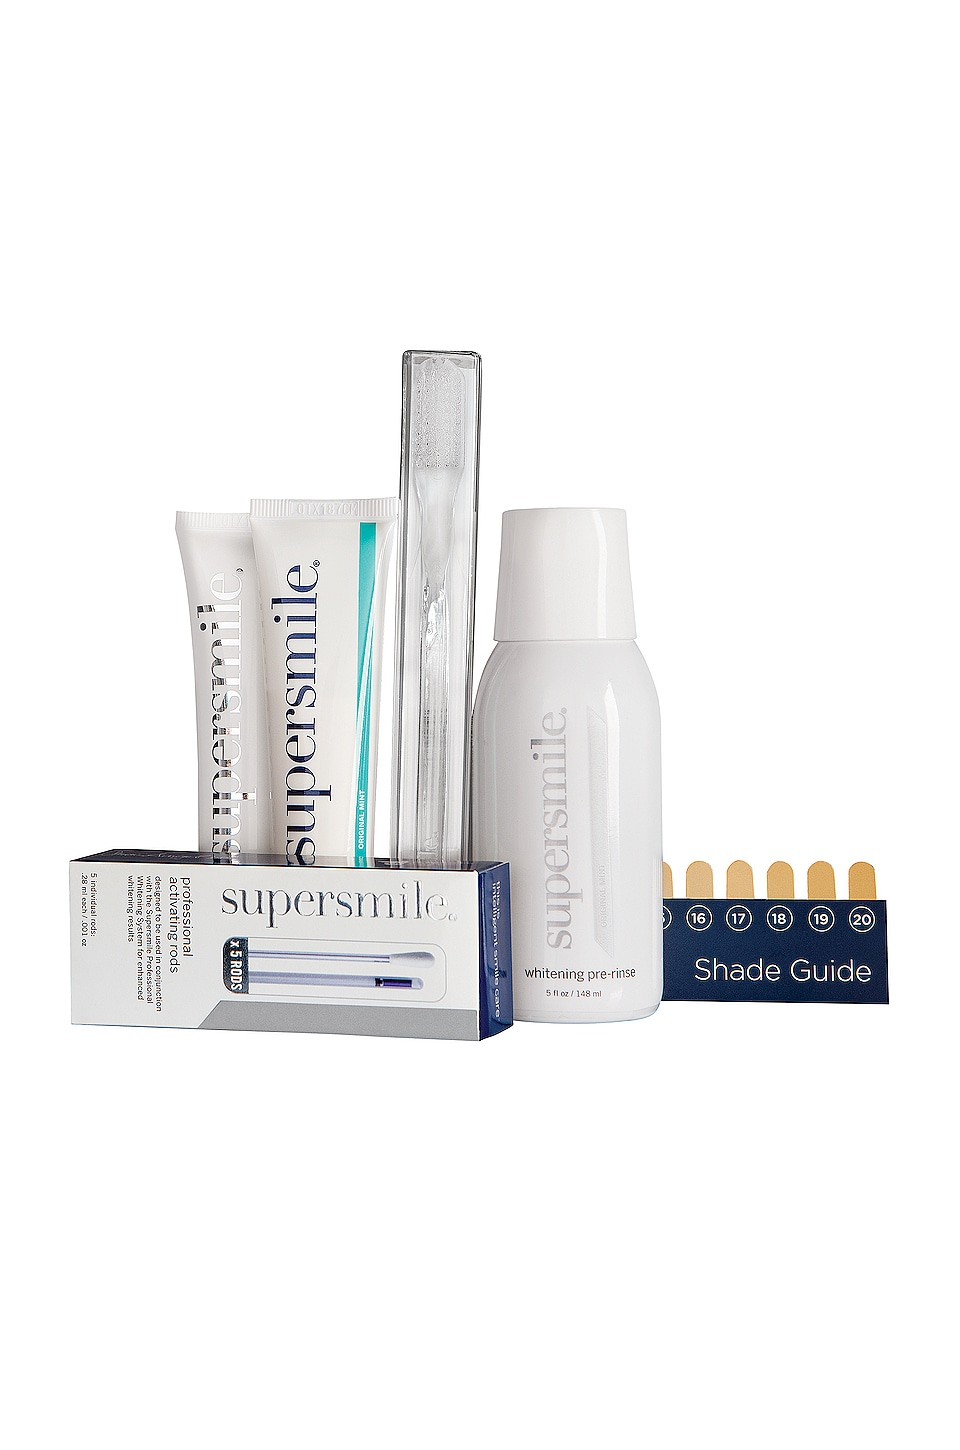 SUPERSMILE 6 MINUTES TO A WHITER SMILE KIT